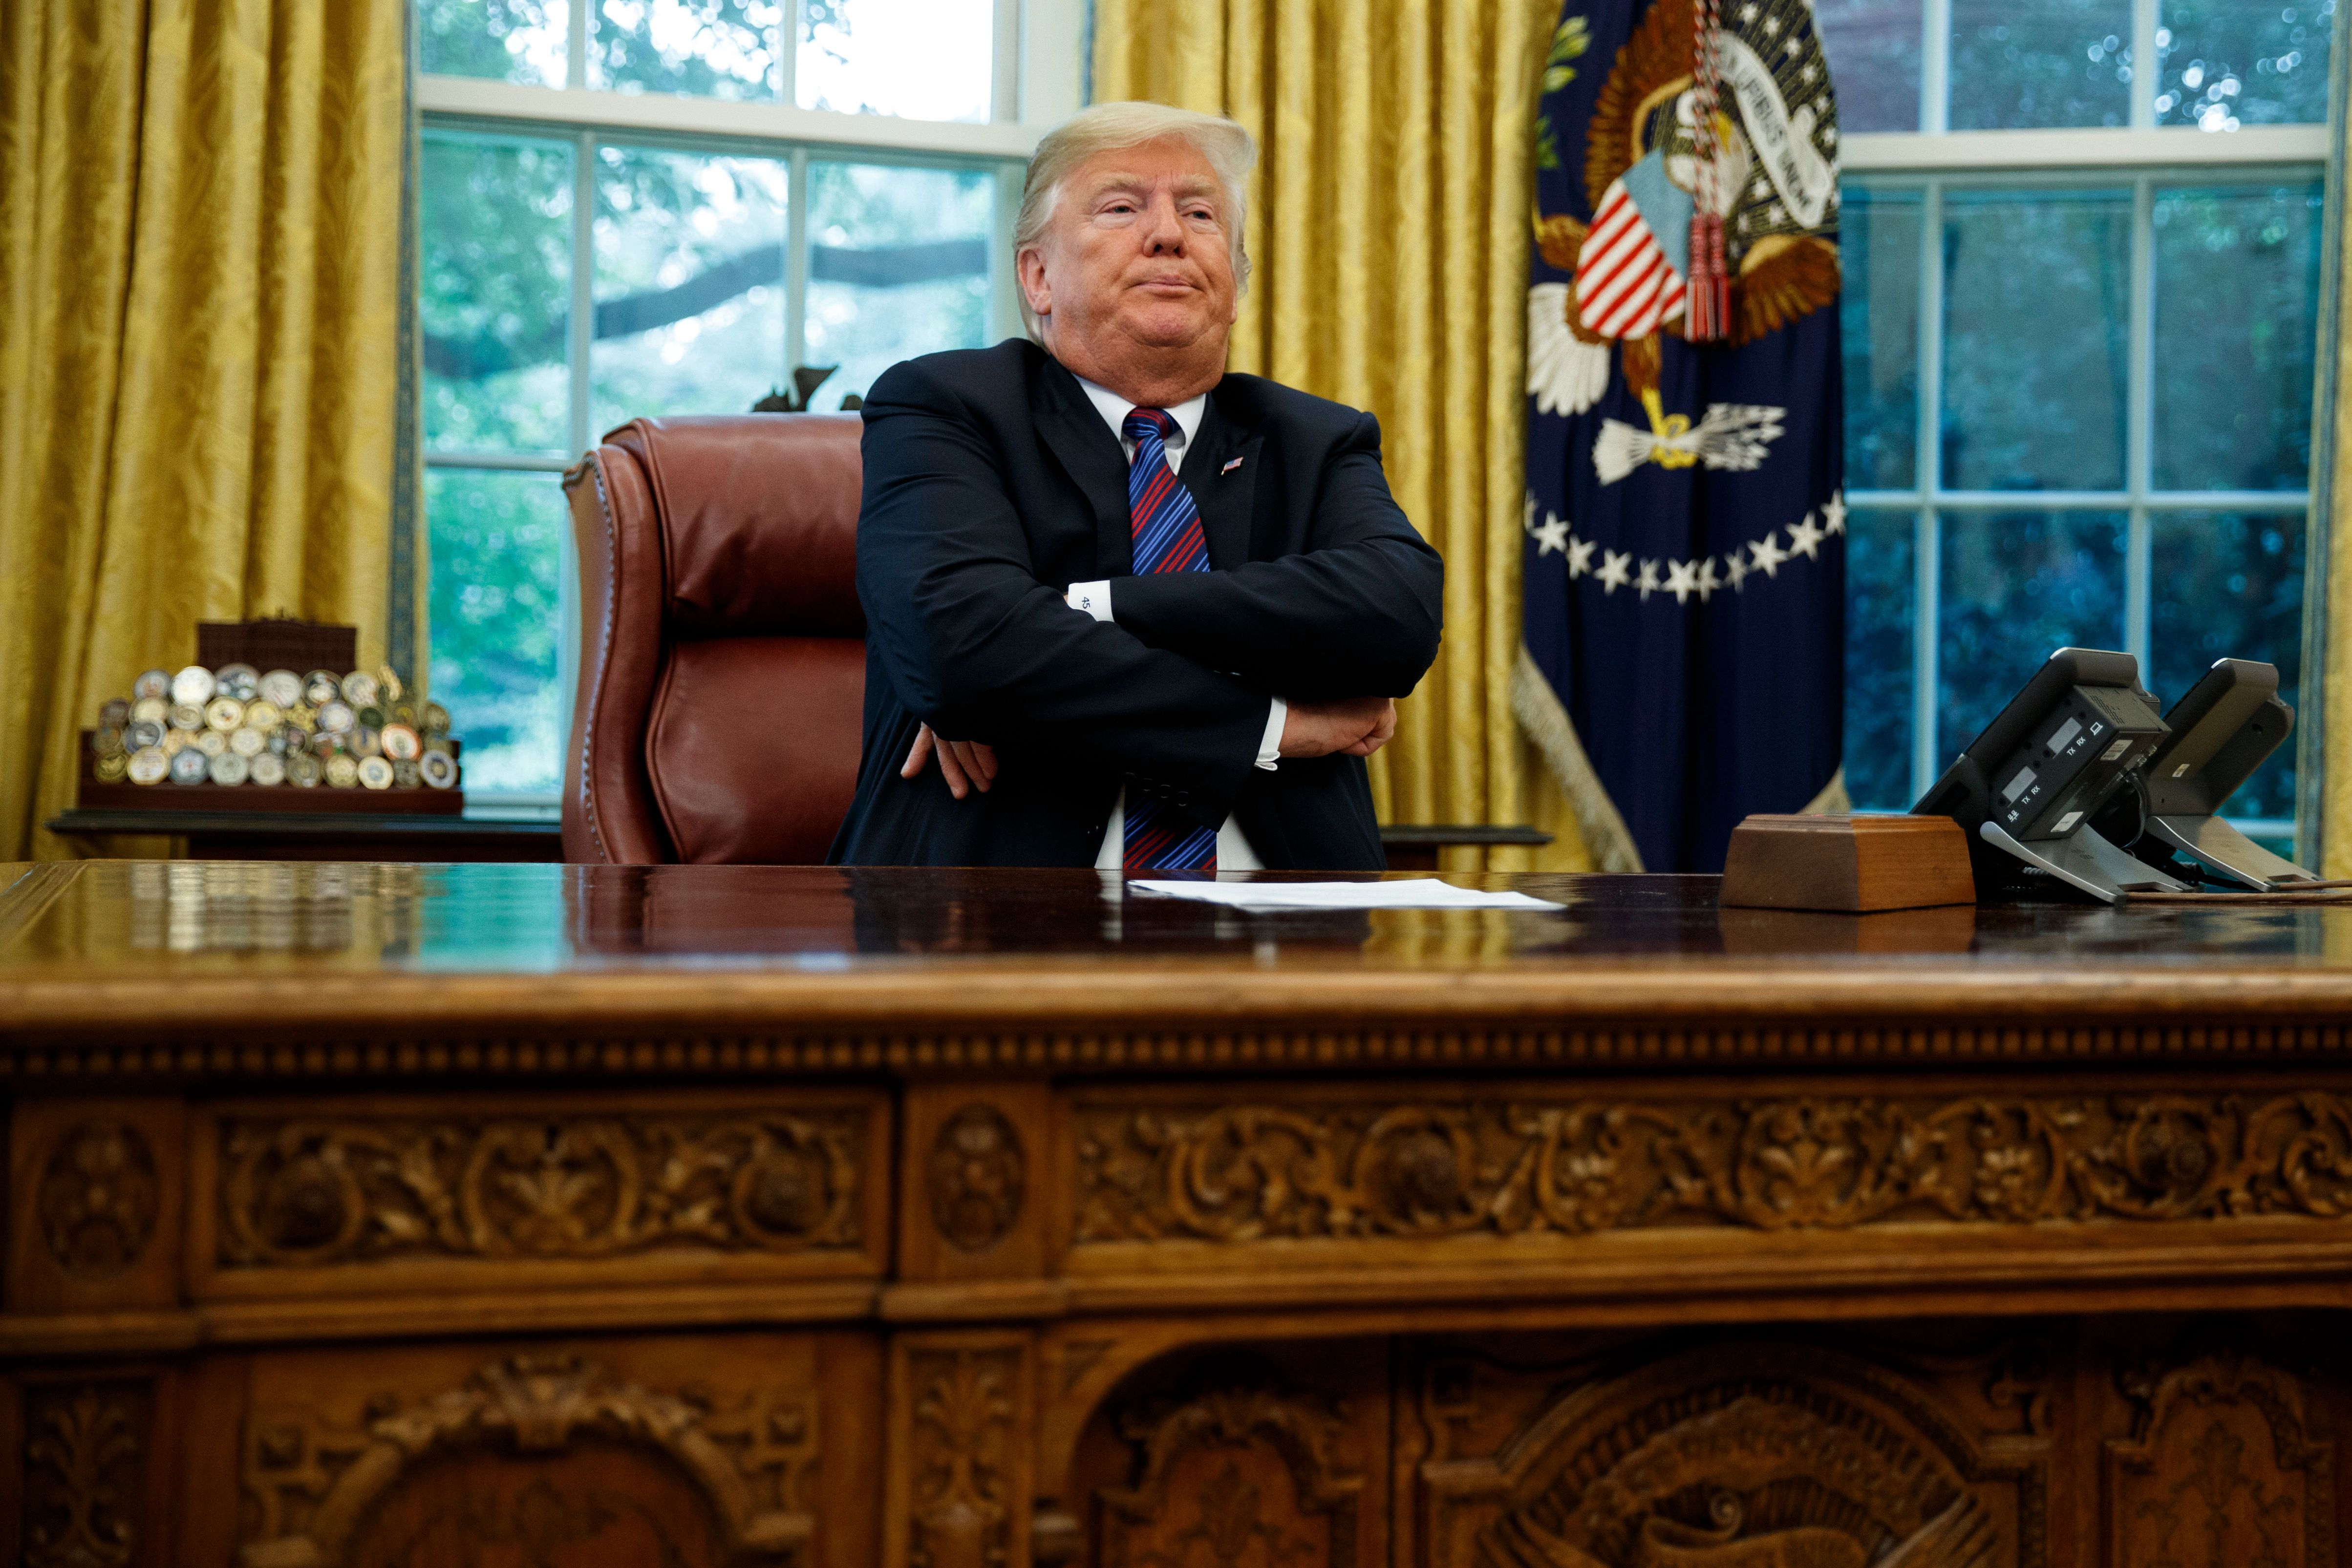 "President Donald Trump crosses his arms after speaking with Mexican President Enrique Pena Nieto on the phone about a trade agreement between the United States and Mexico, in the Oval Office of the White House, Monday, Aug. 27, 2018, in Washington. Trump has bowed to widespread pressure from veterans groups and others to do more to honor John McCain's death. Trump on Monday ordered flags at the White House and elsewhere lowered to half-staff until the six-term senator is buried Sunday. He also proclaimed ""respect"" for McCain, with whom he feuded bitterly for years. It was a marked reversal from Trump's refusal to comment on McCain. Earlier Monday, the White House flag had been raised. (AP Photo/Evan Vucci)"